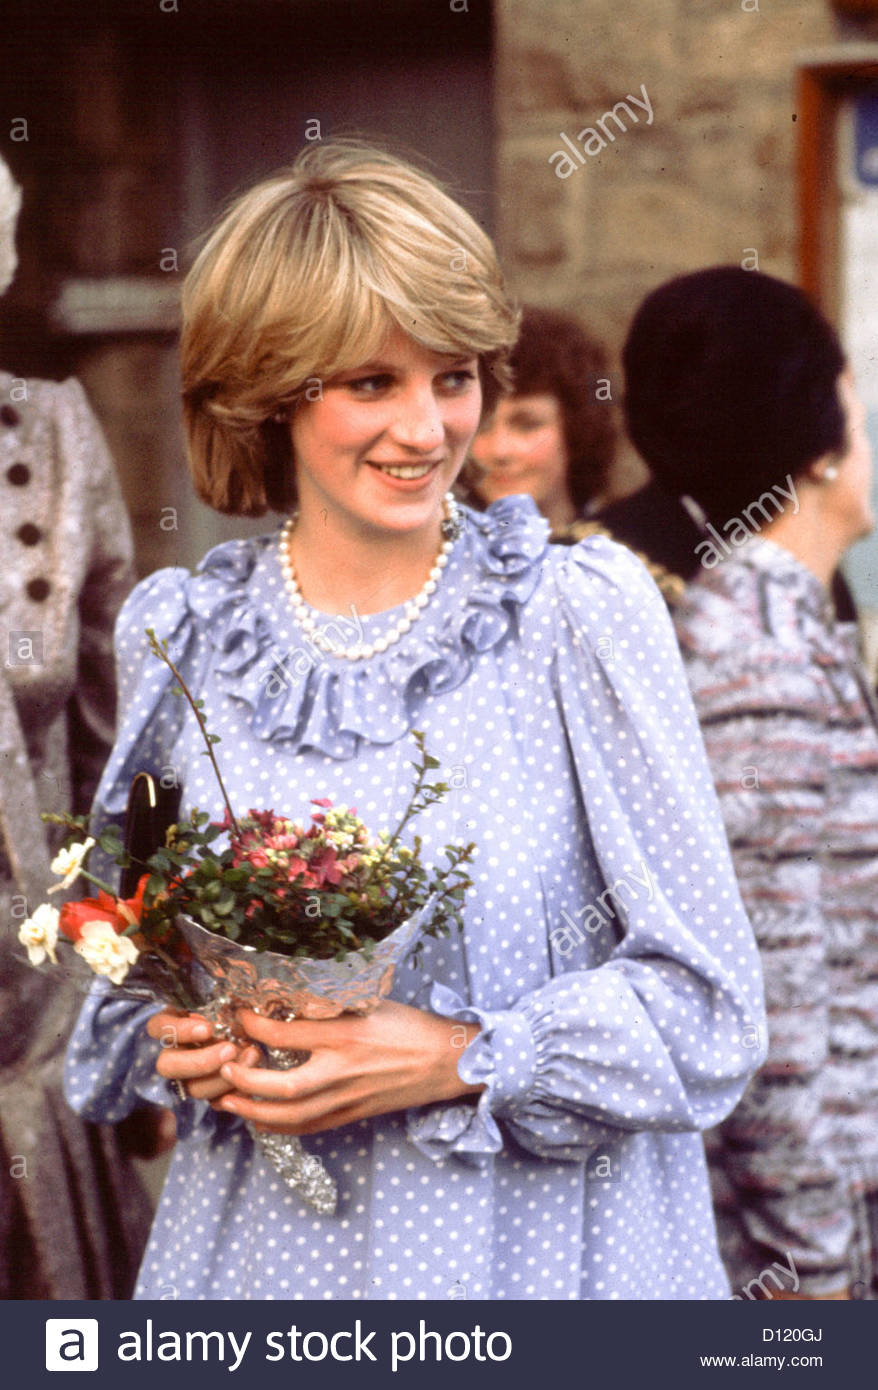 princess diana lady di diana spencer alive human stock photo alamy https www alamy com stock photo princess diana lady di diana spencer alive human 52290130 html